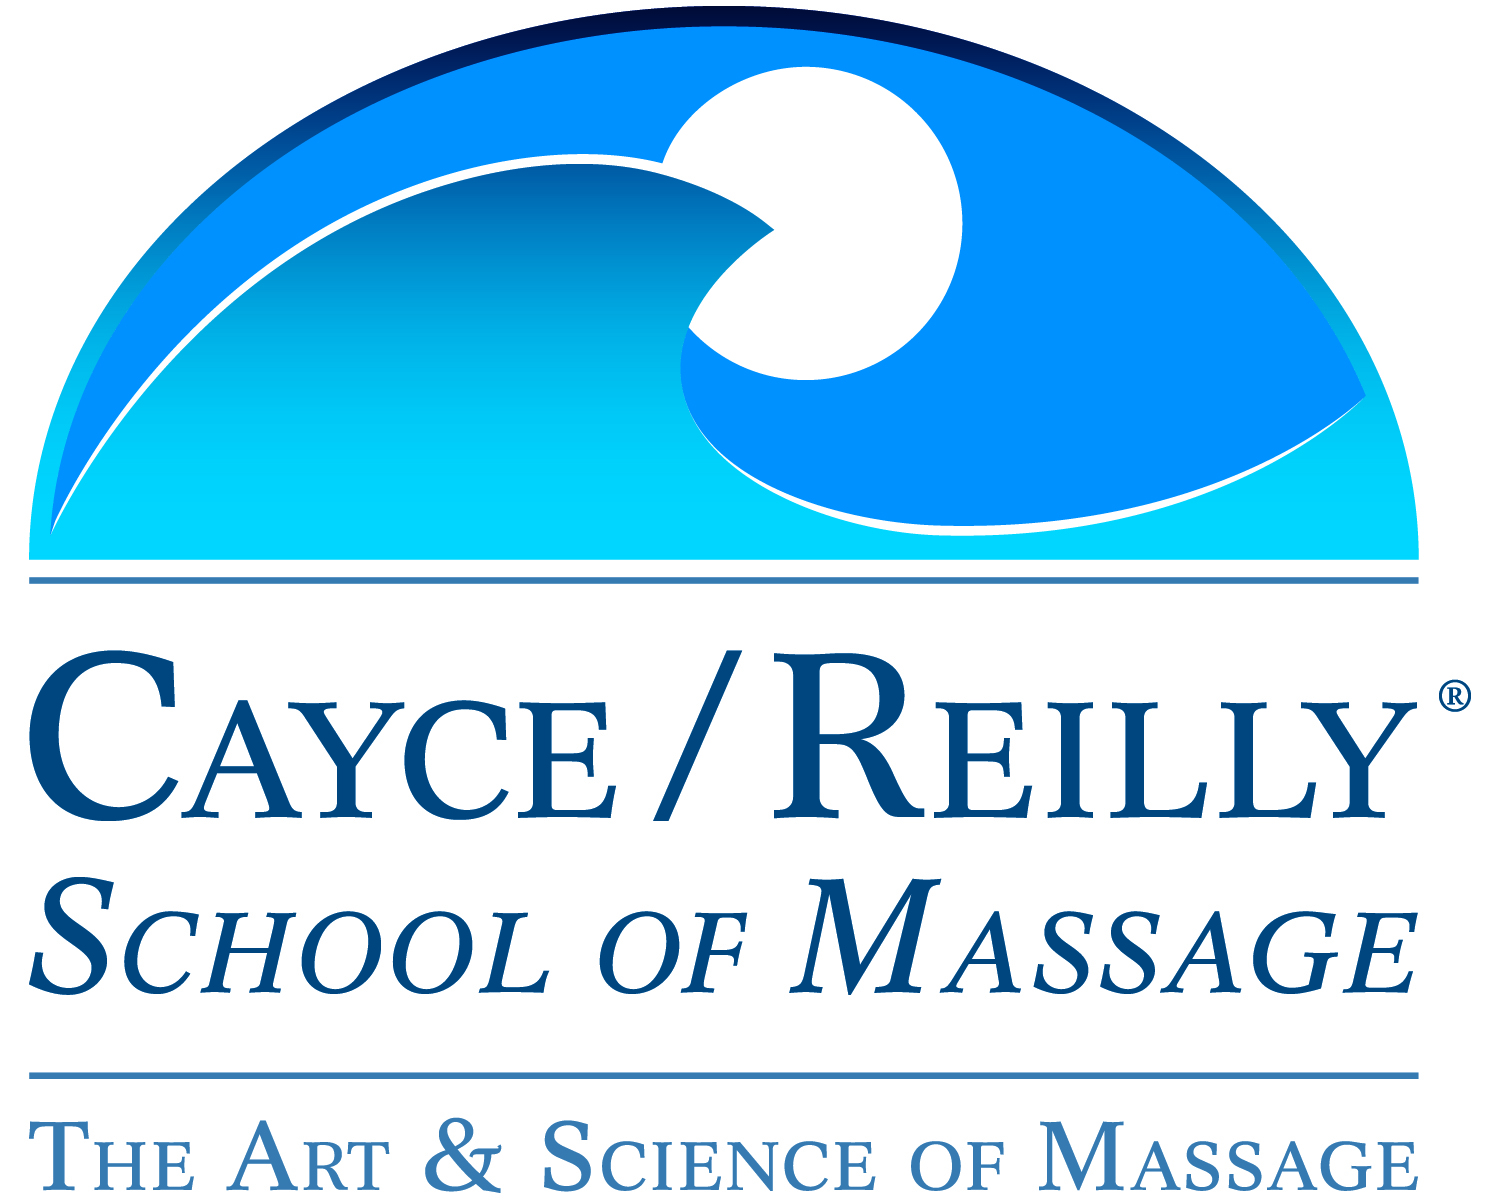 Cayce/Reilly School of Massage